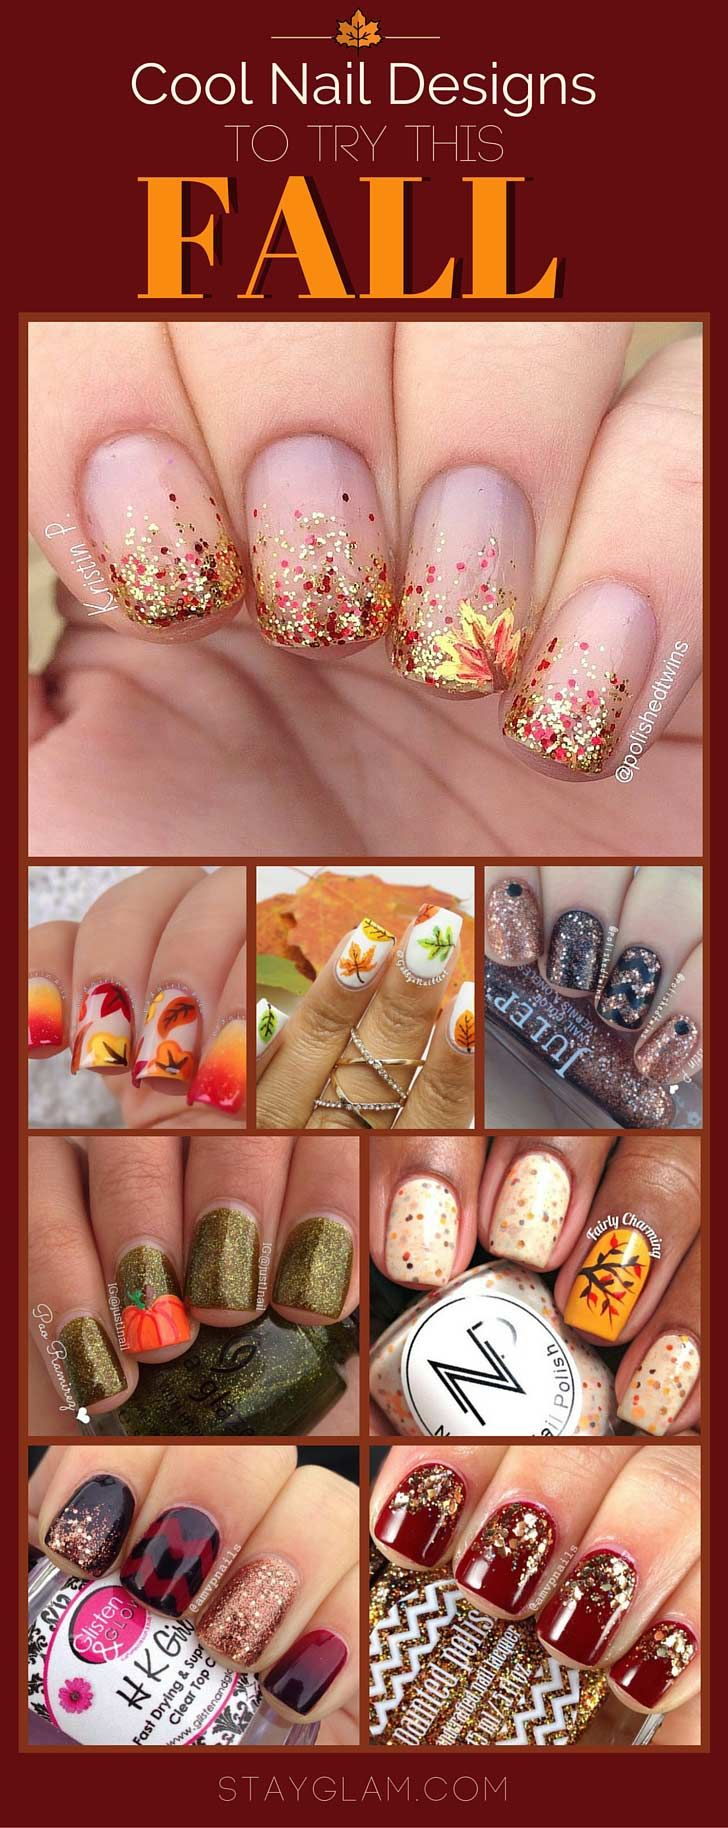 35 Cool Nail Designs to Try This Fall   Fingernägel, Herbst und ...